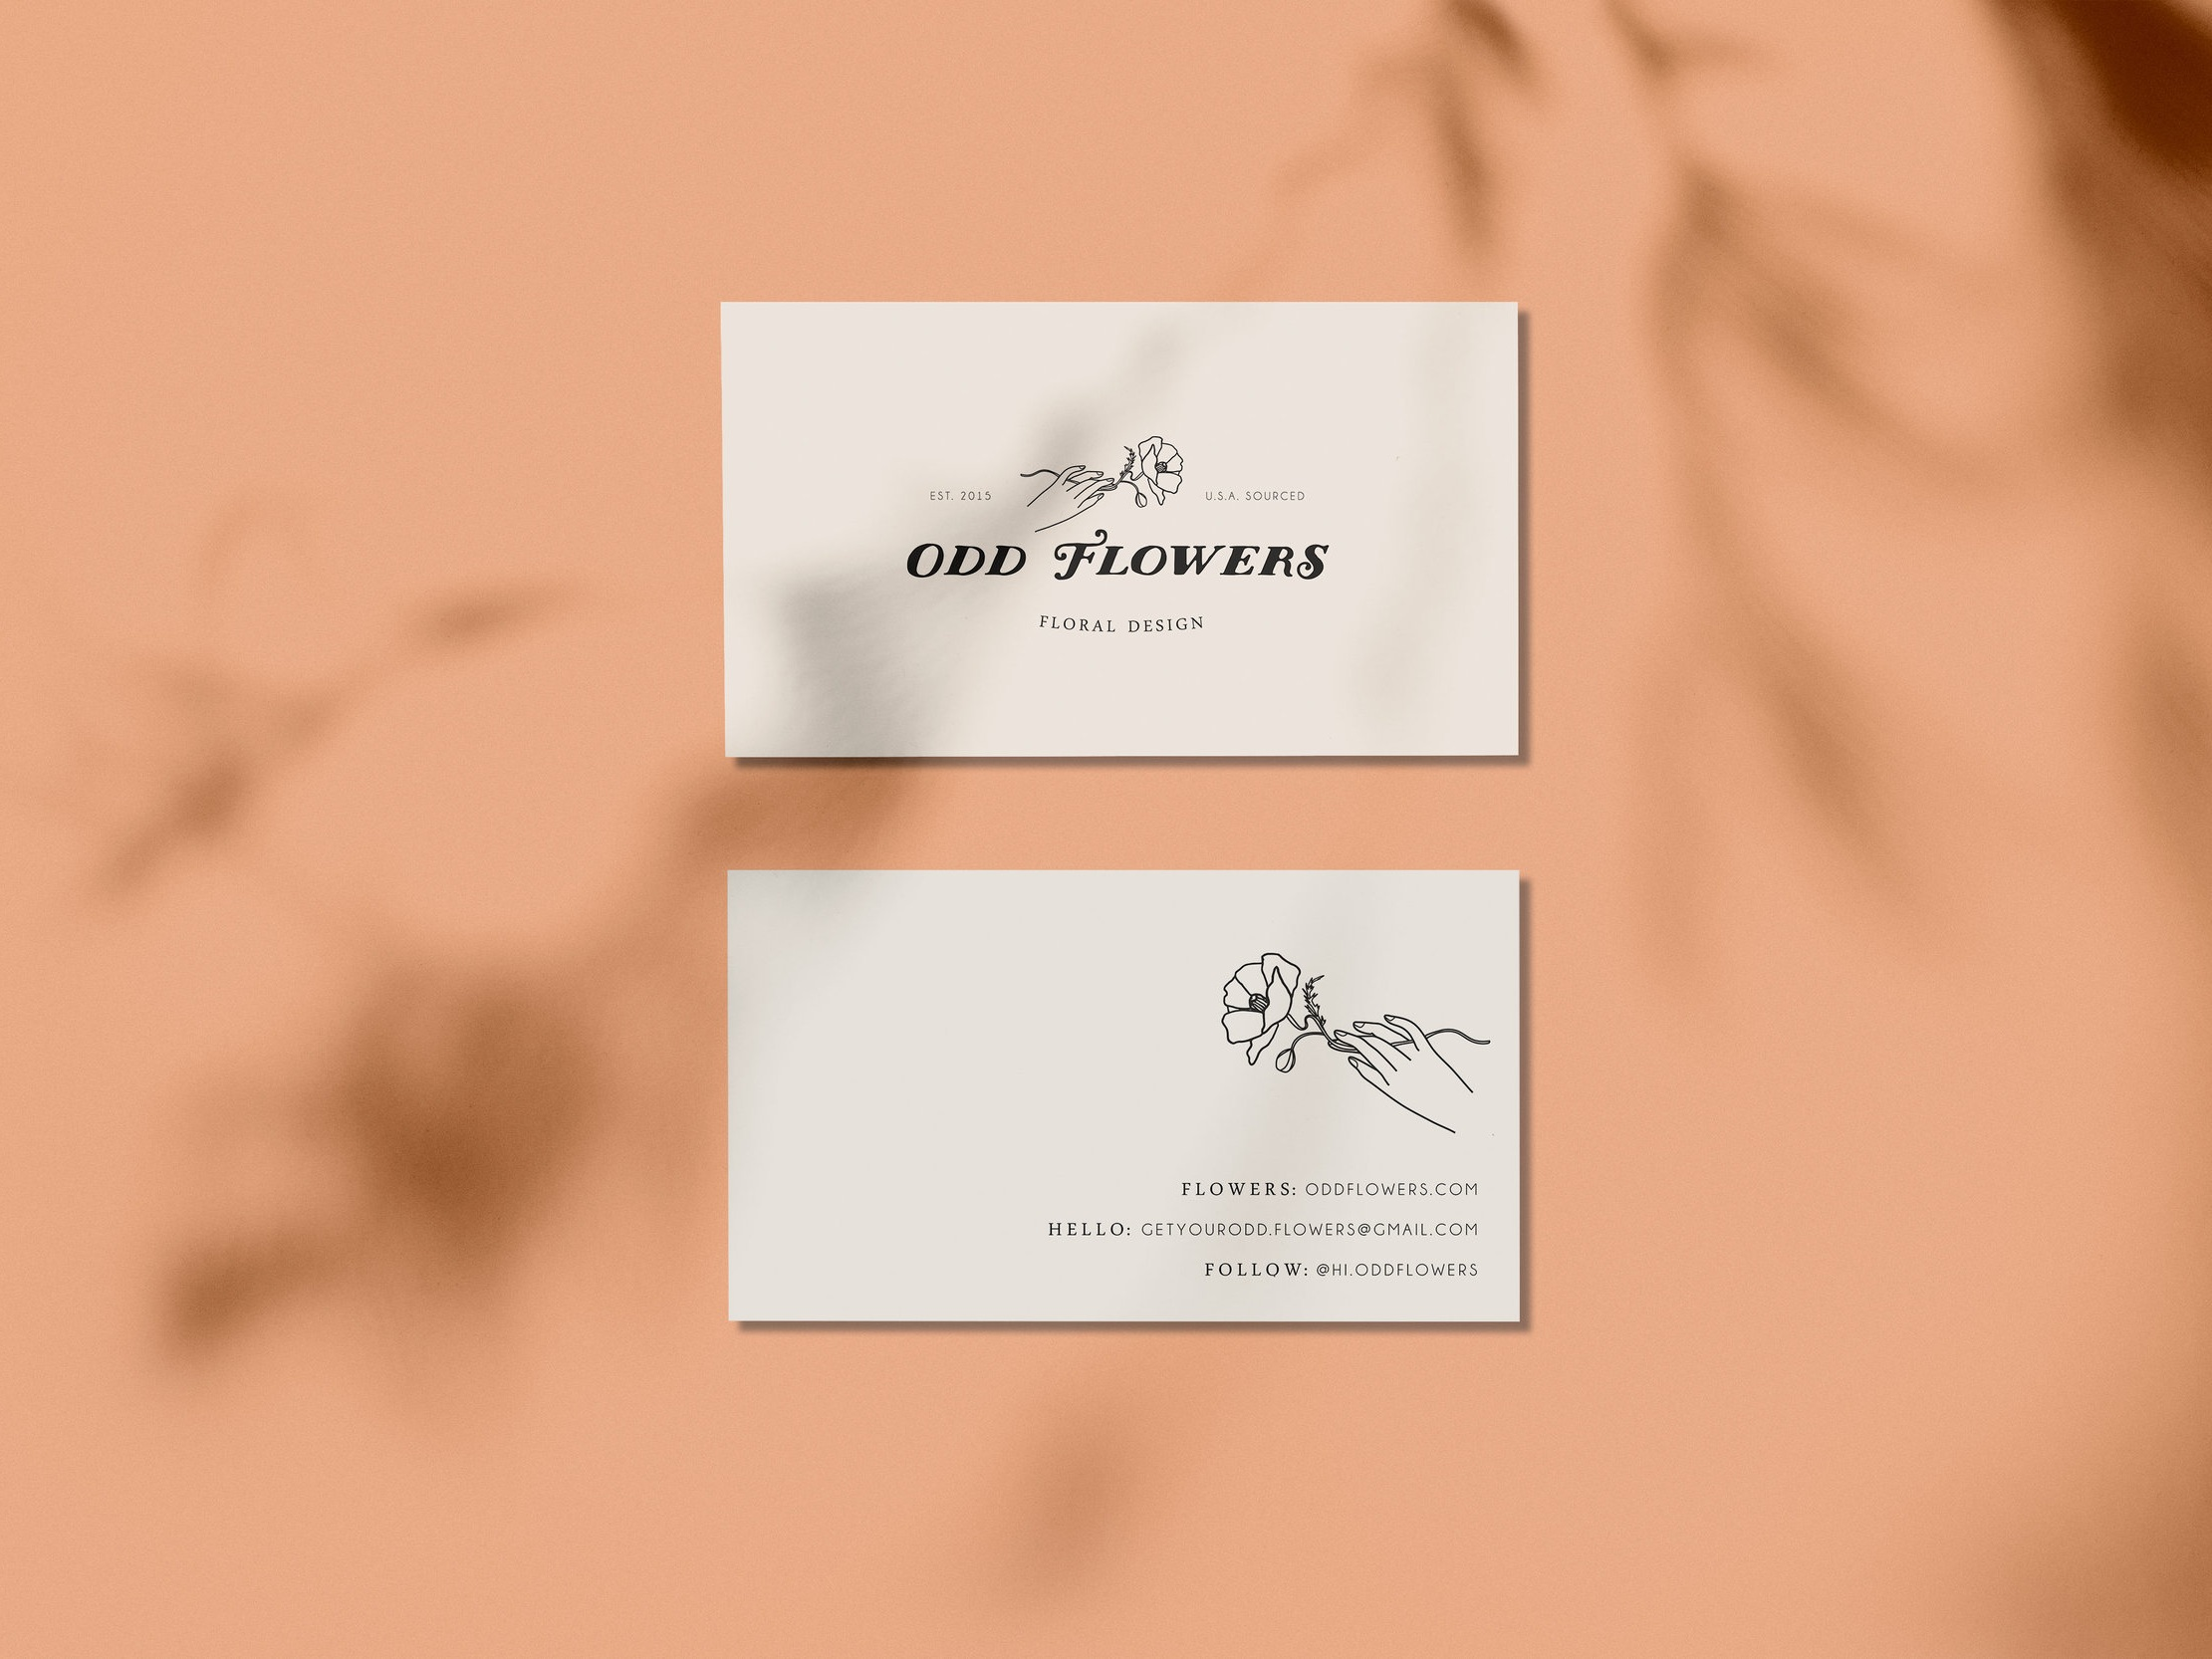 odd flowers floral design business card